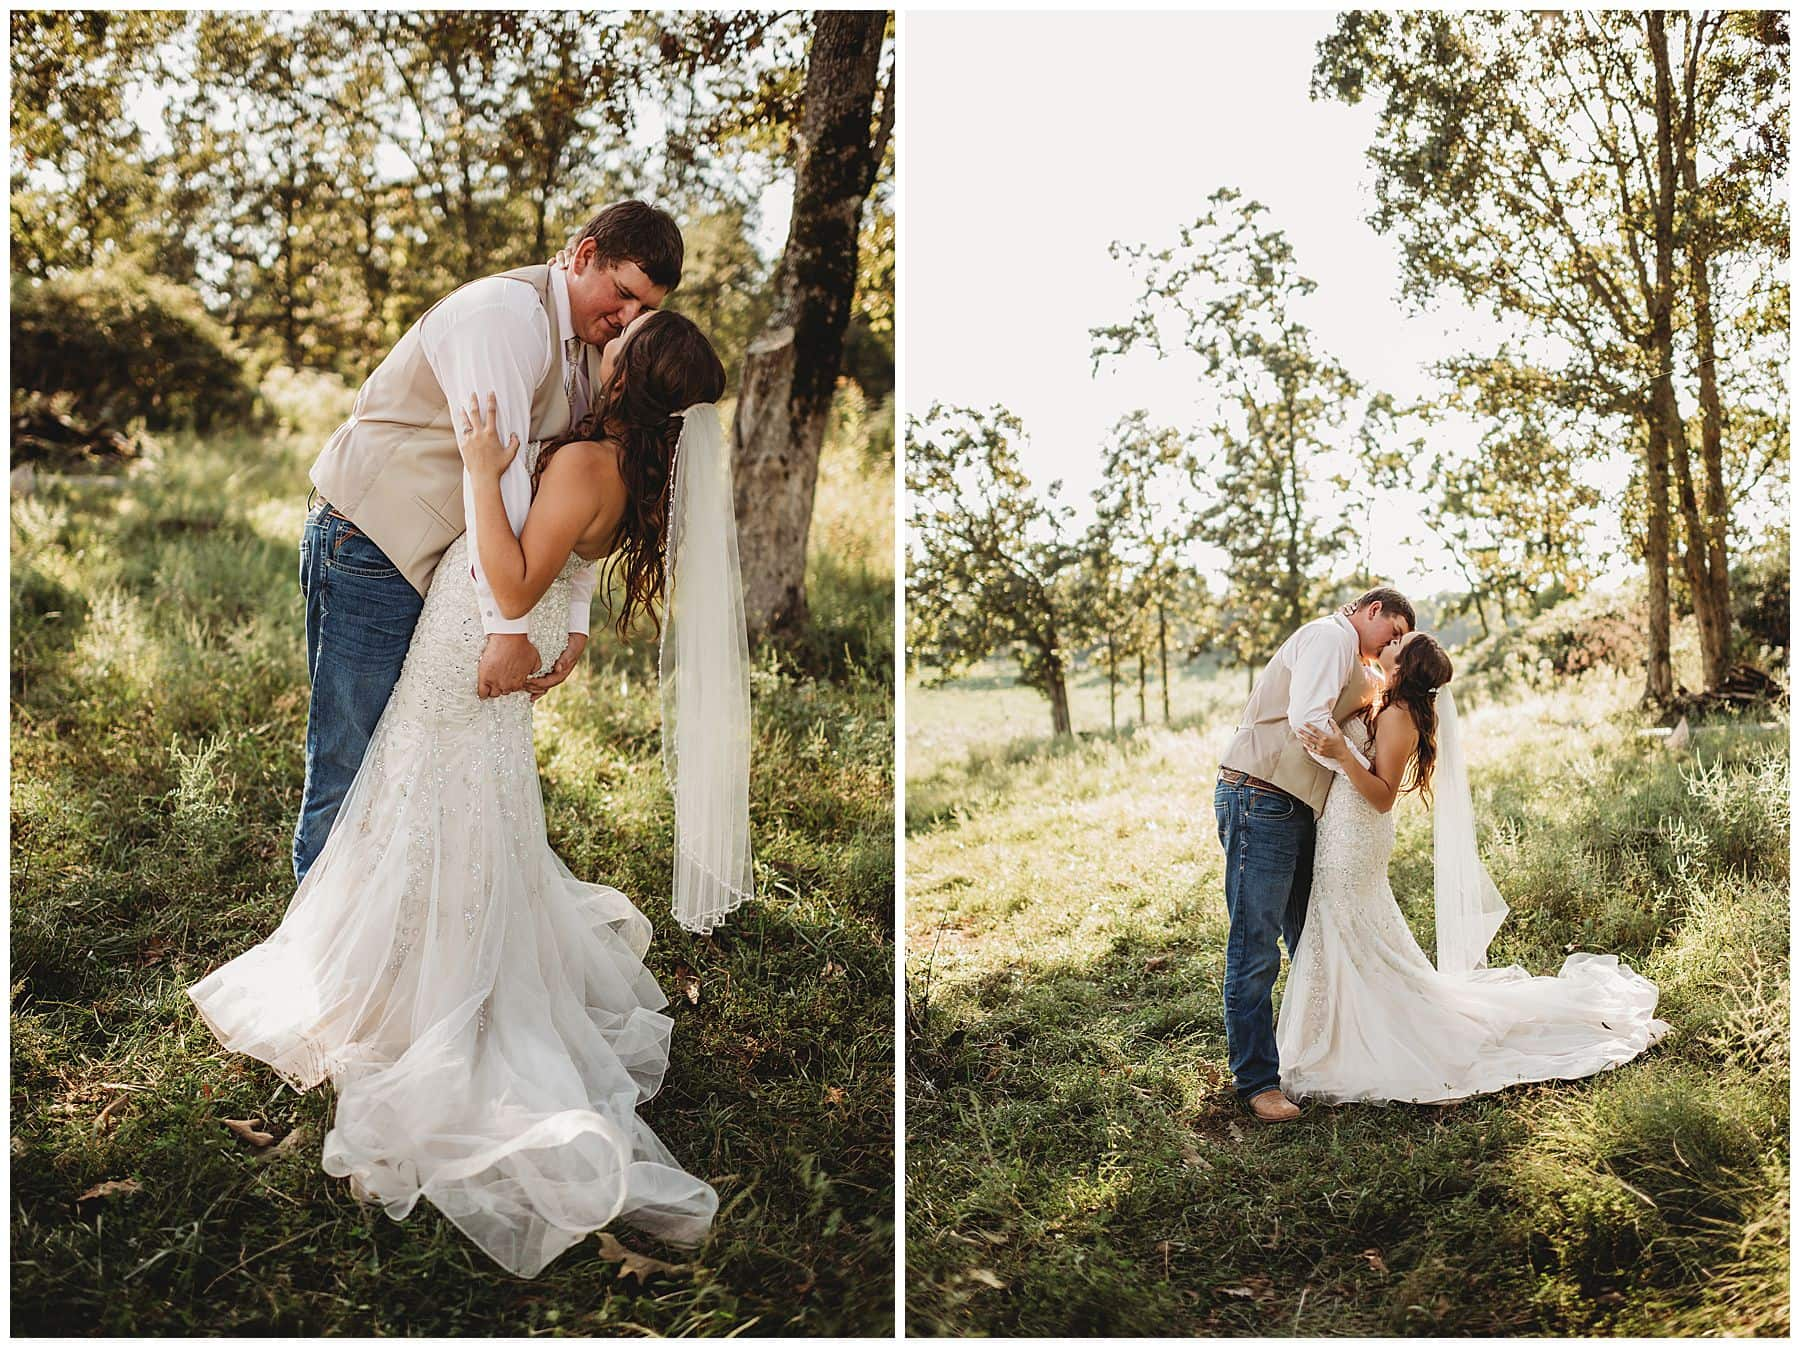 Bonita Valley Wedding